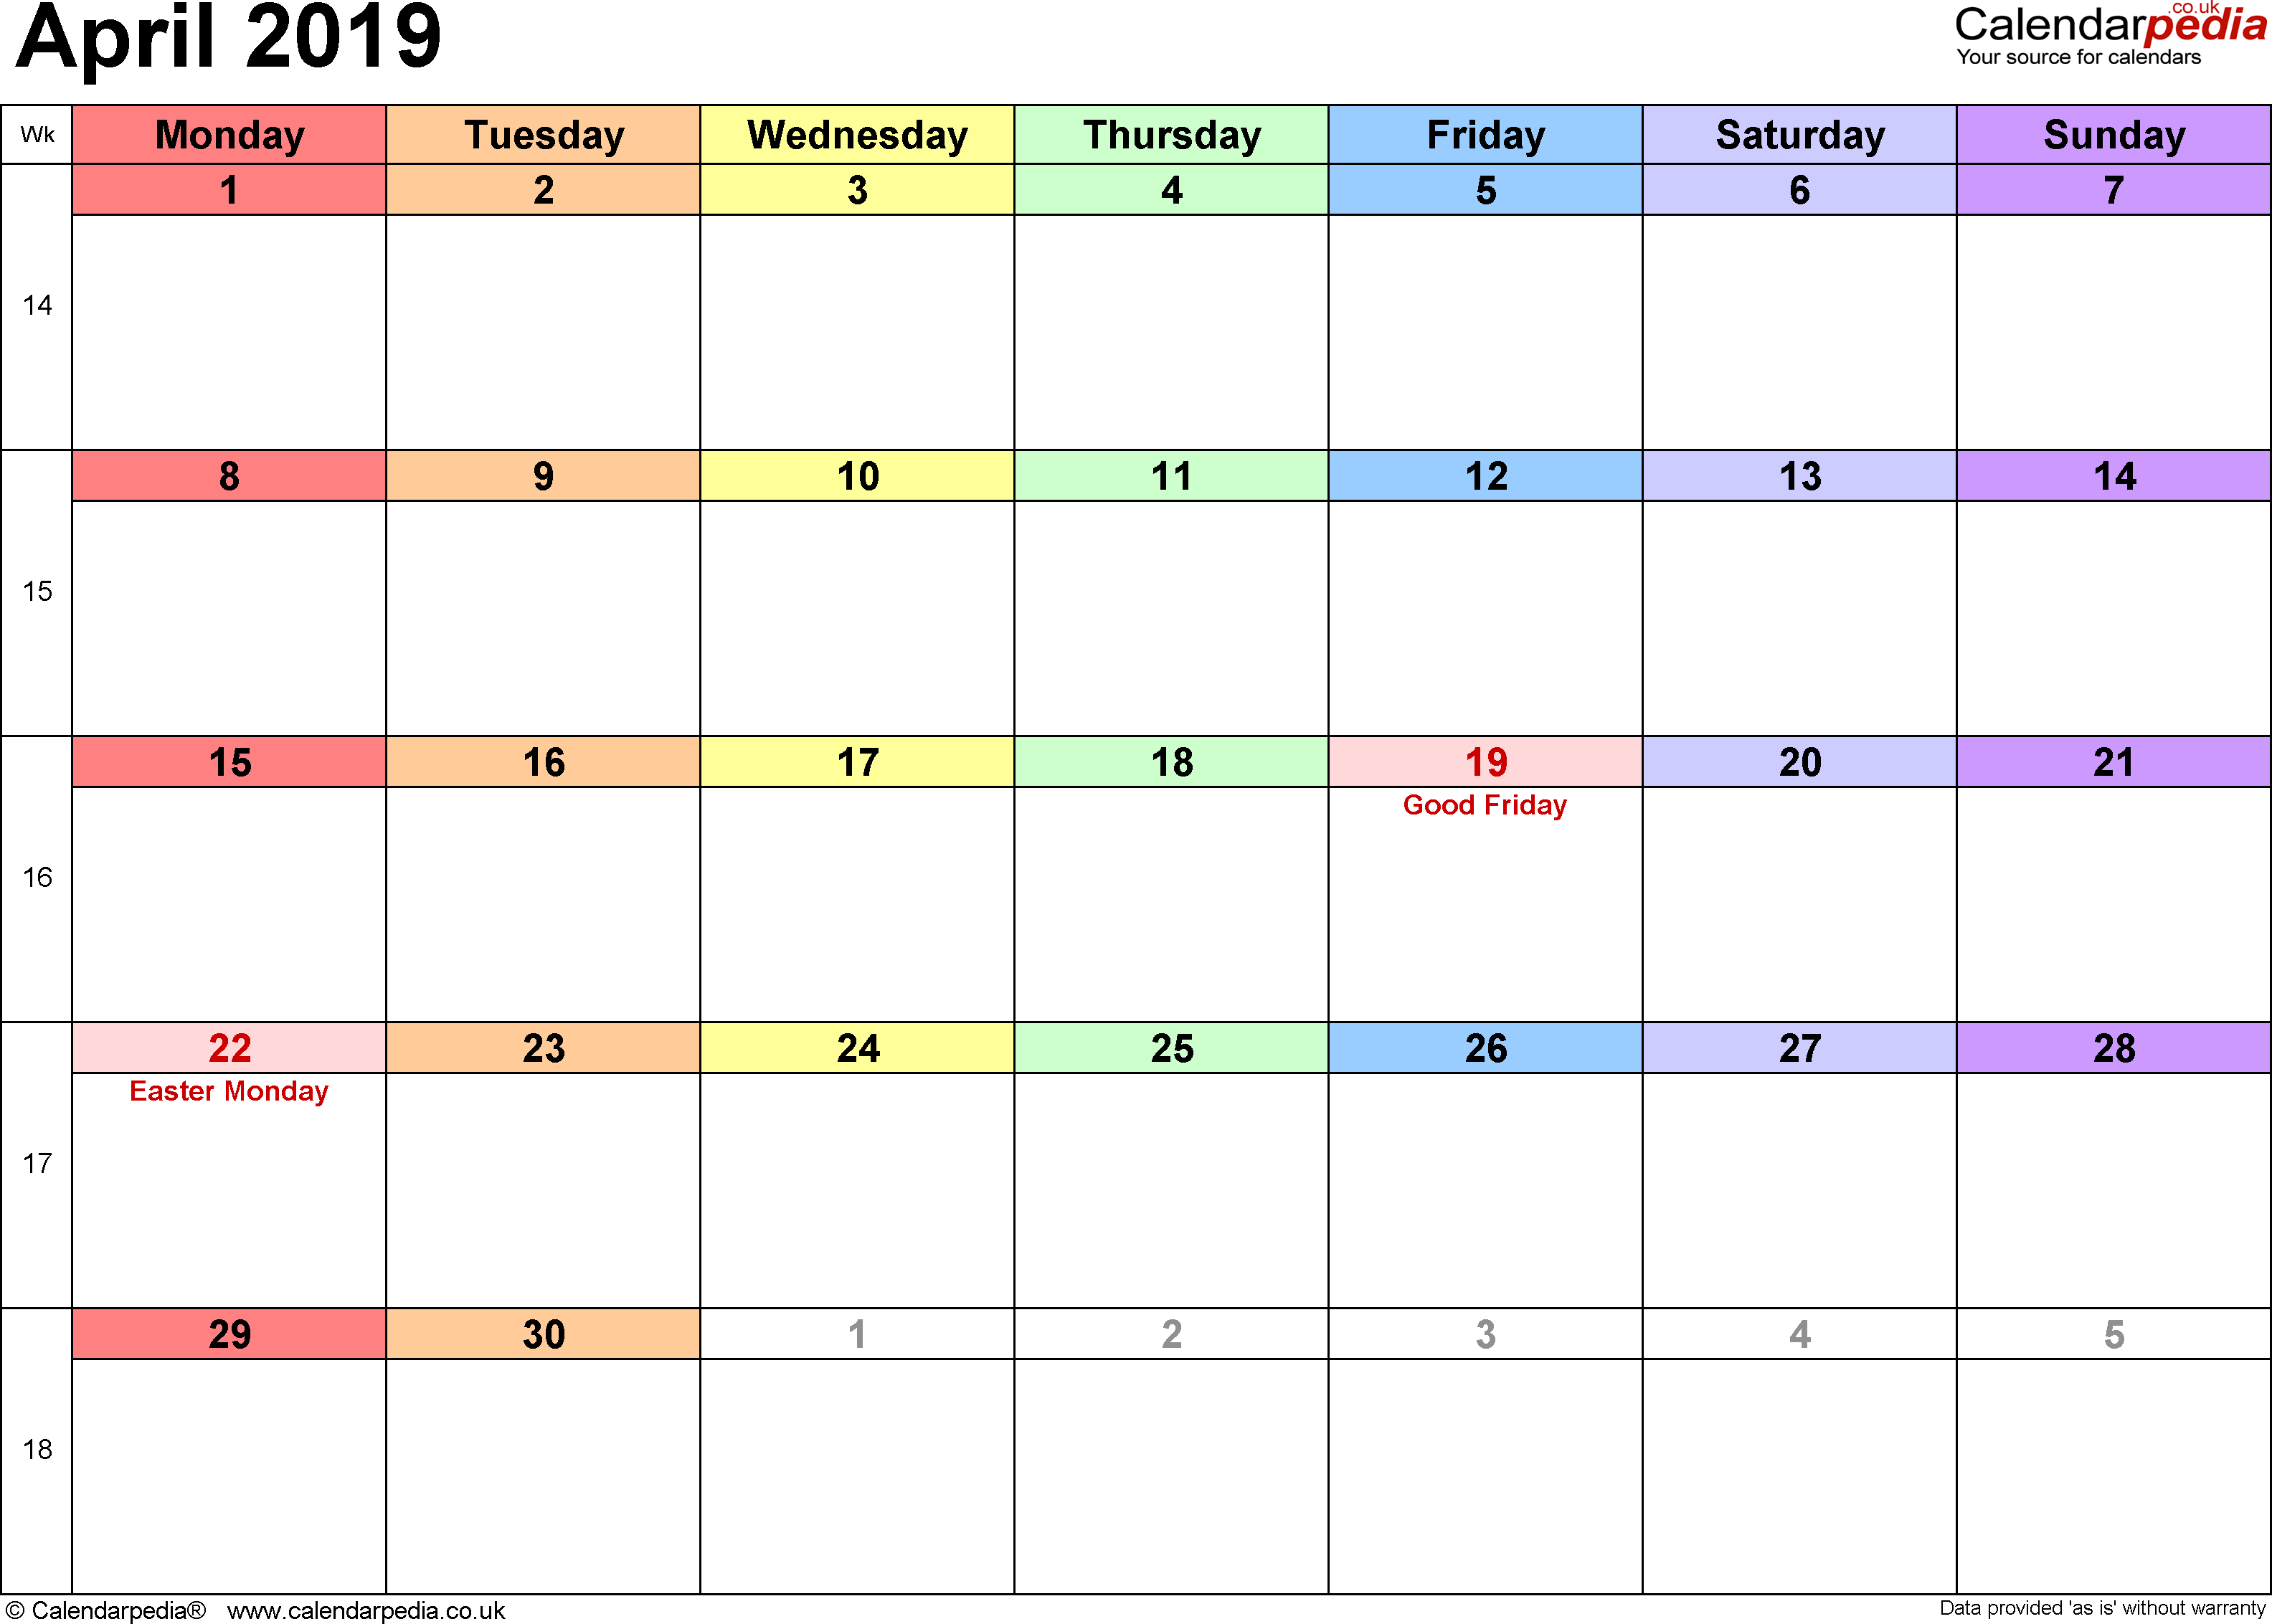 Calendar April 2019, landscape orientation, 1 page, with UK bank holidays and week numbers